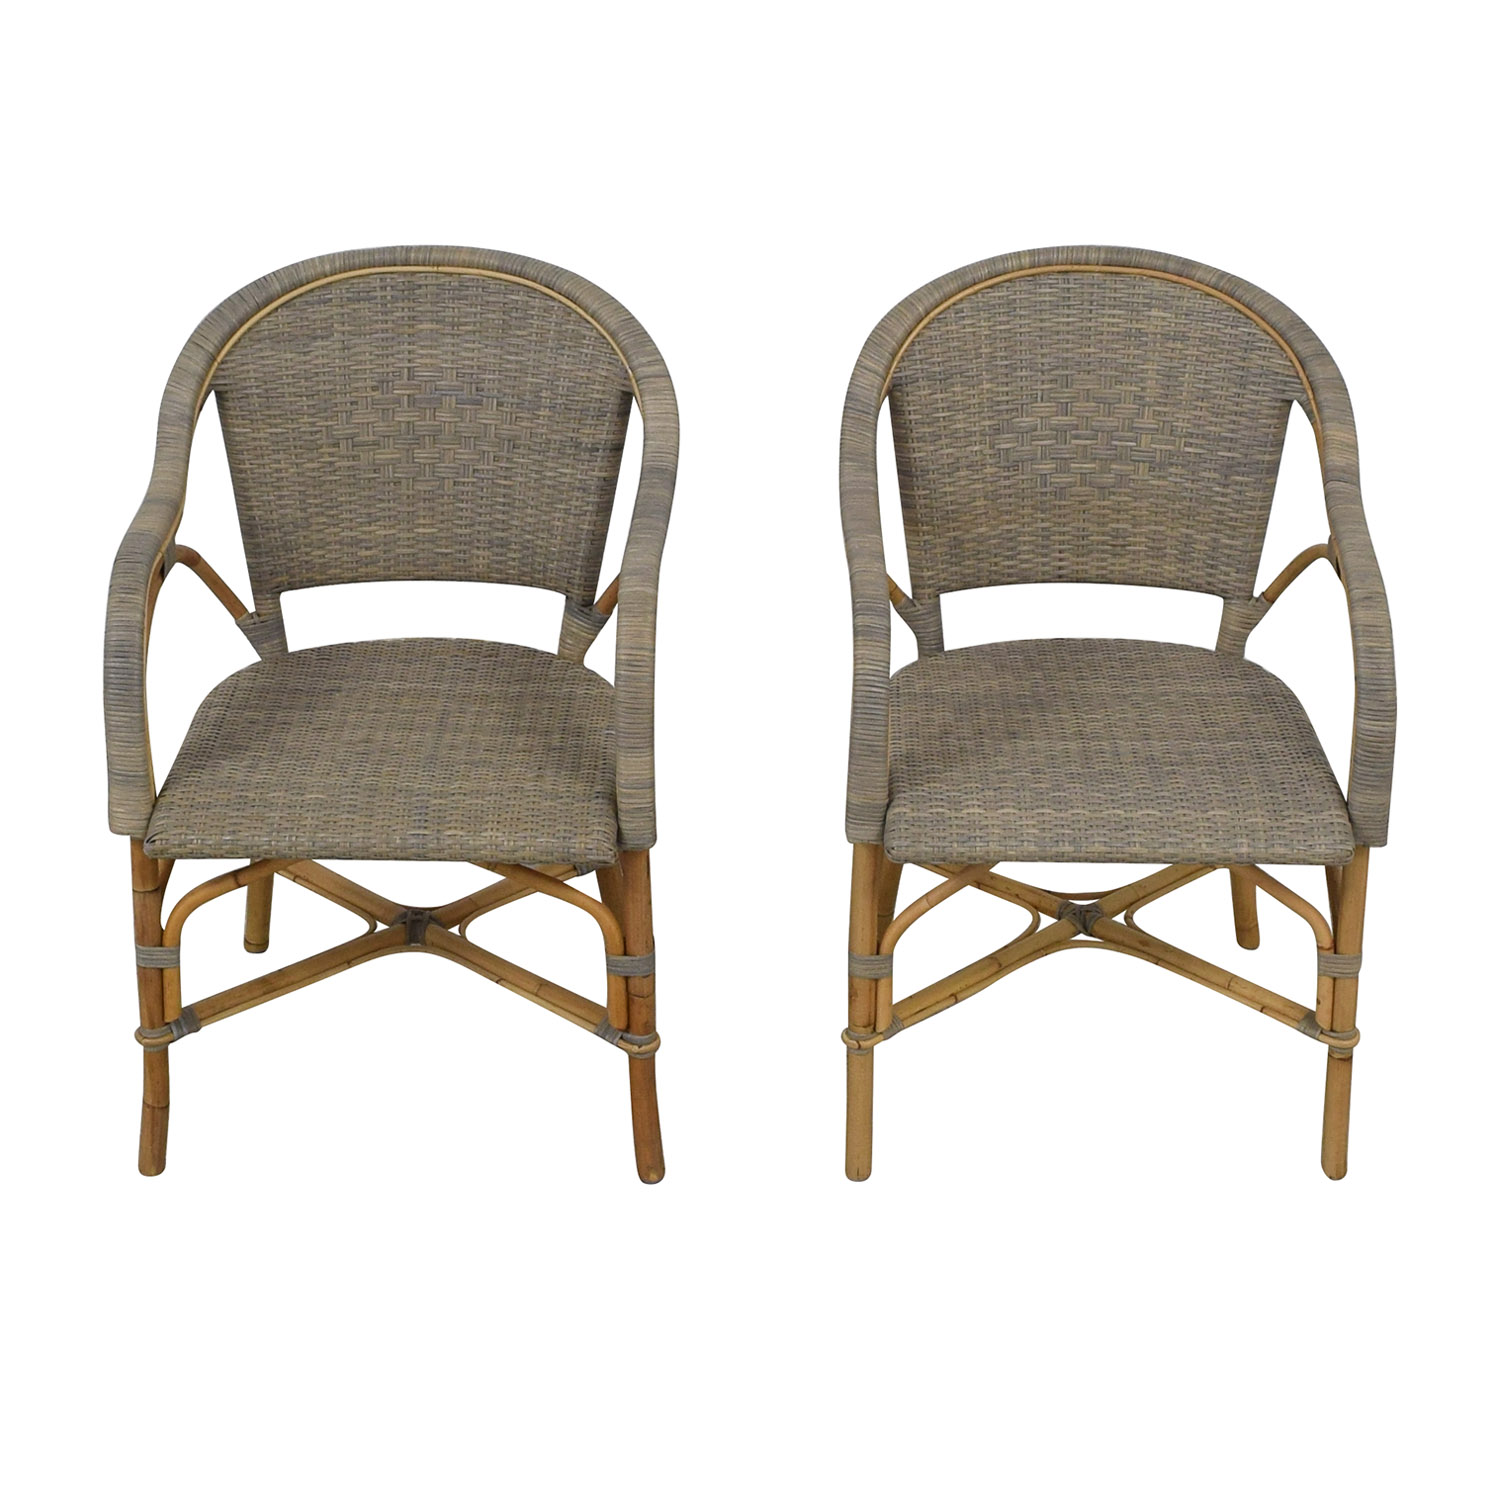 buy Serena & Lily Sunwashed Riviera Armchairs Serena & Lily Dining Chairs